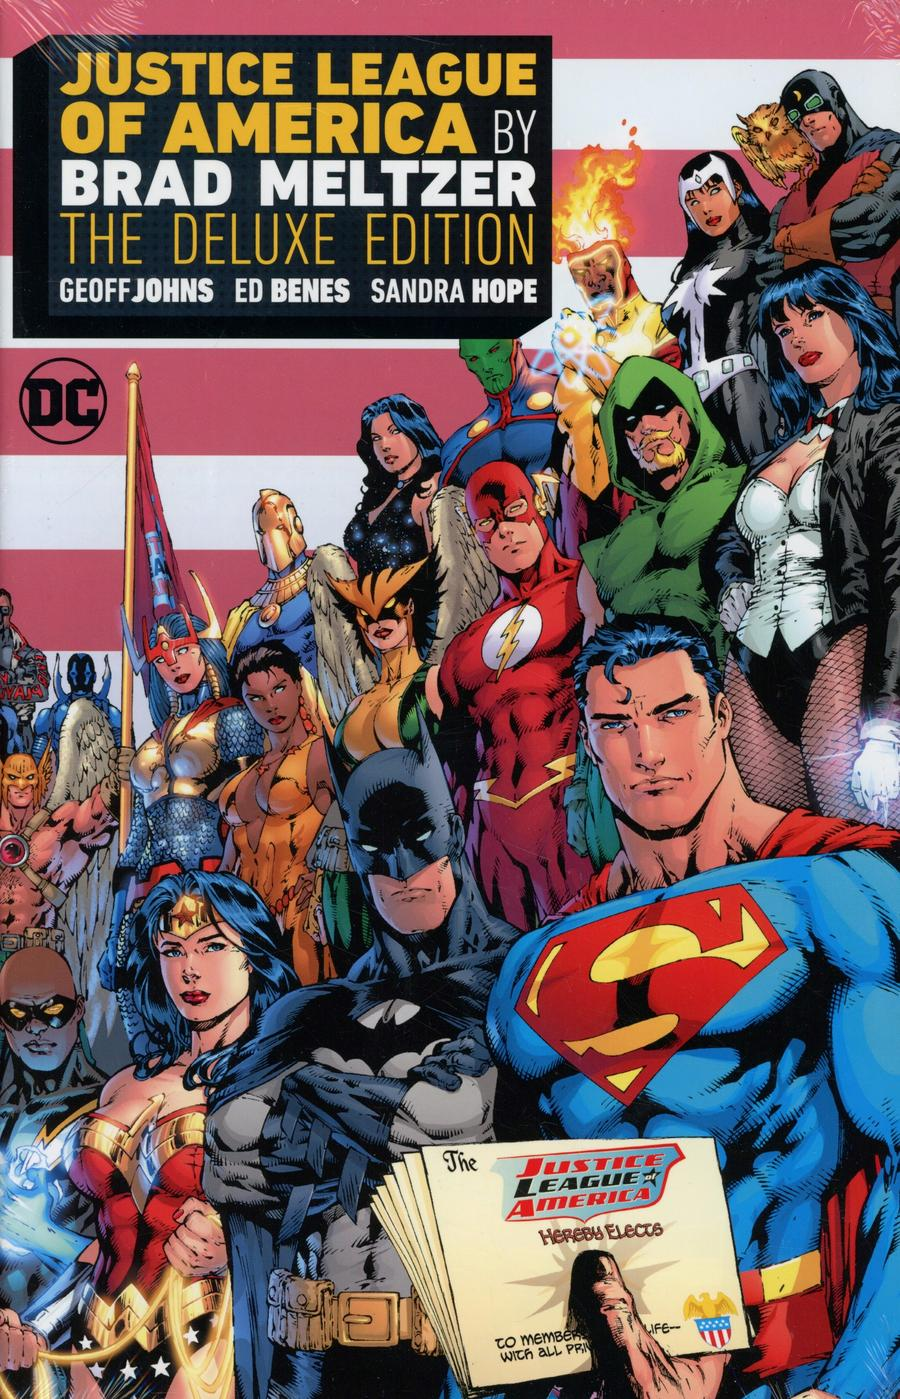 Justice League Of America By Brad Meltzer Deluxe Edition HC